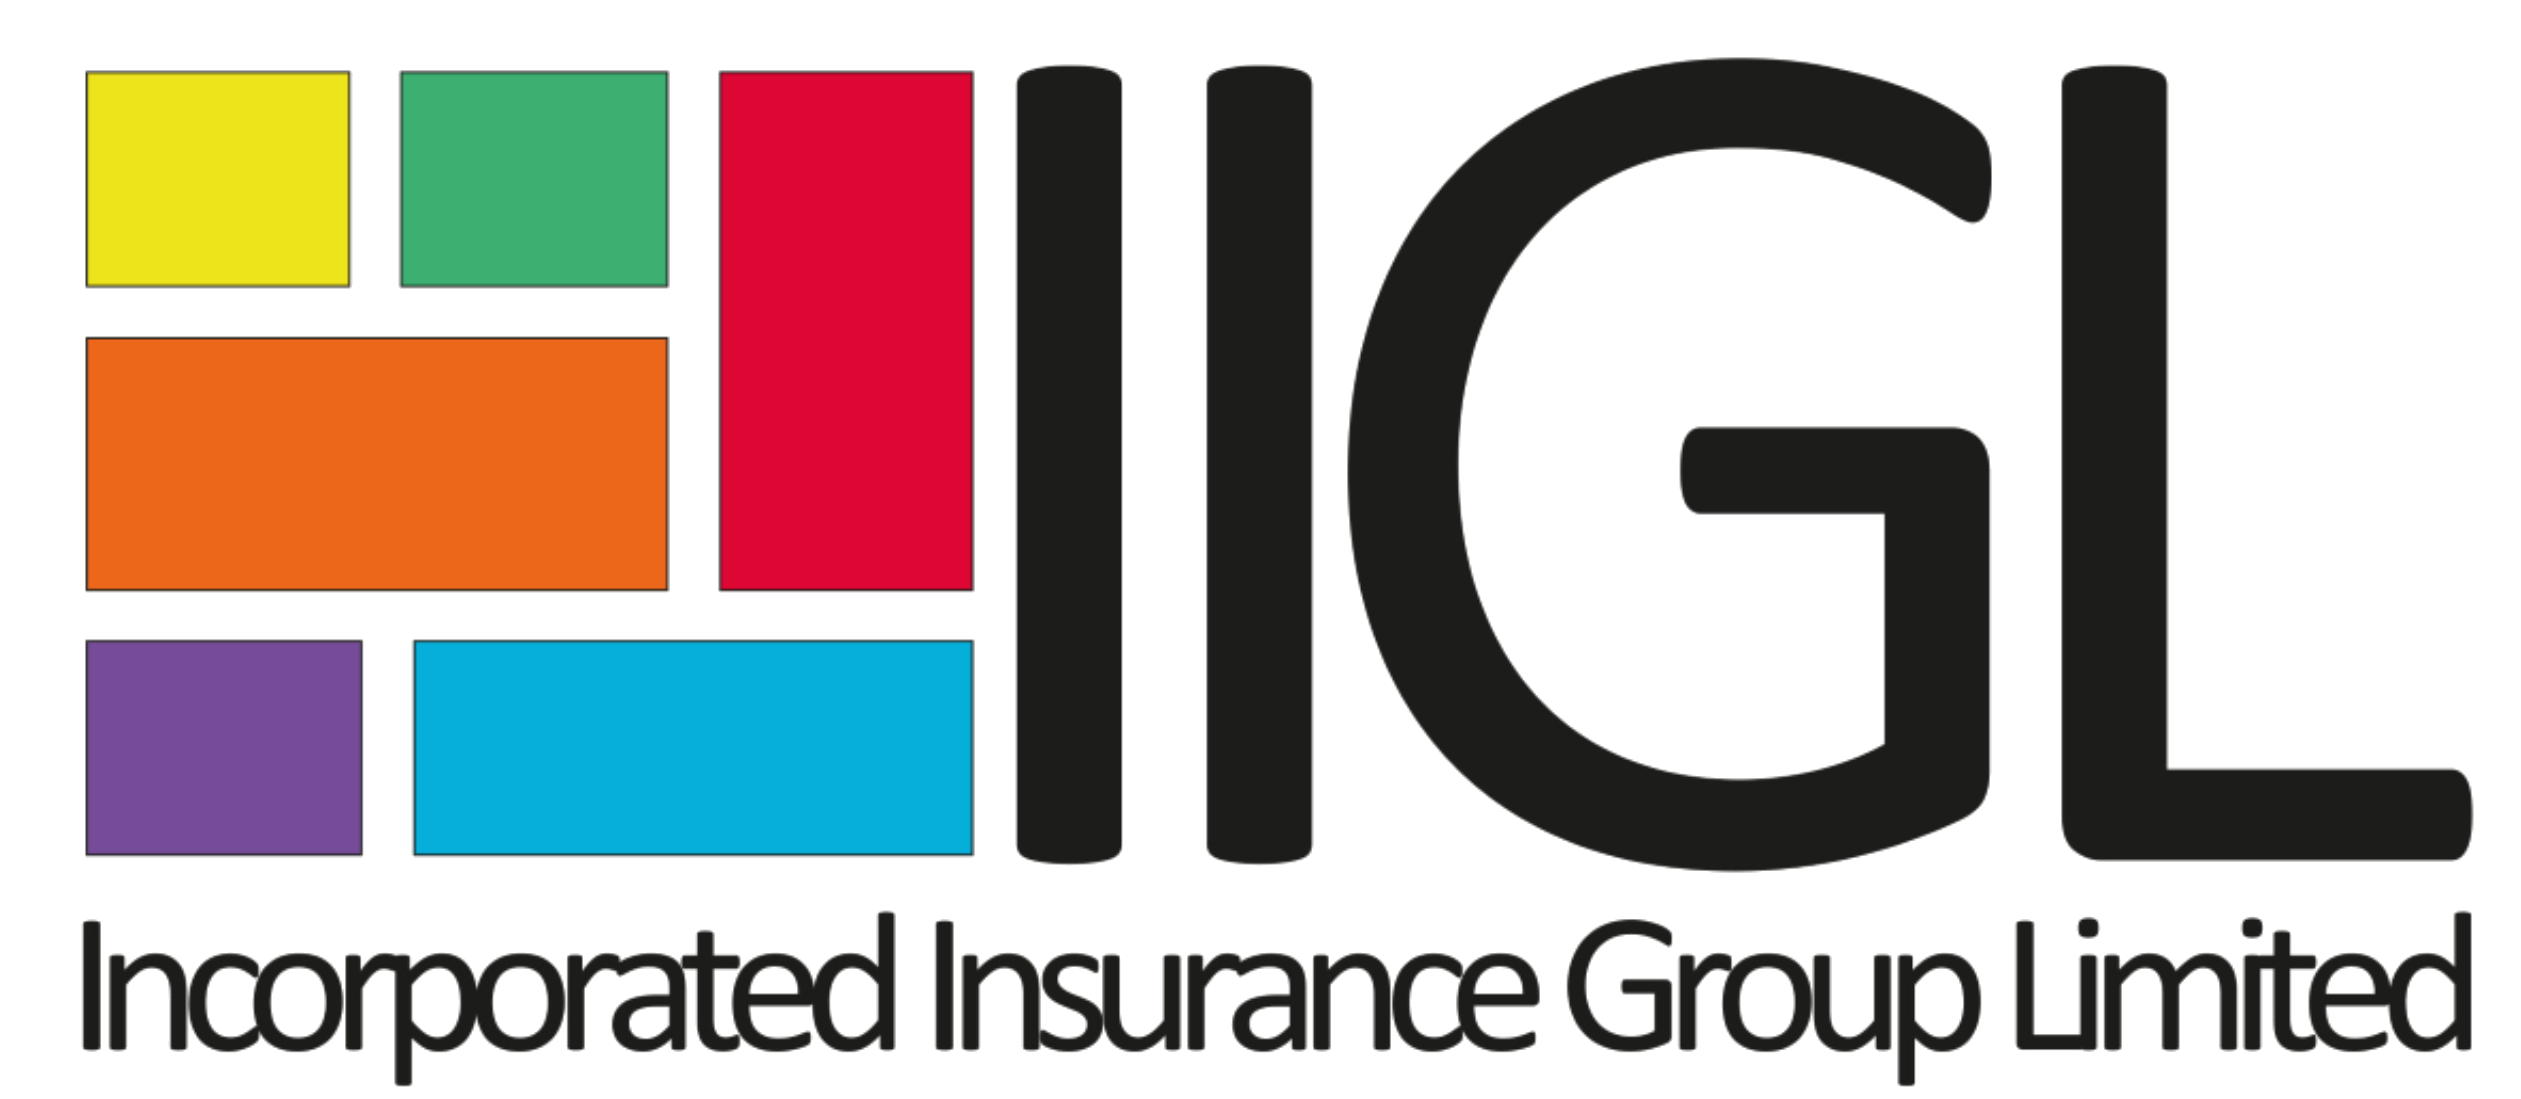 Incorporated Insurance Group Limited